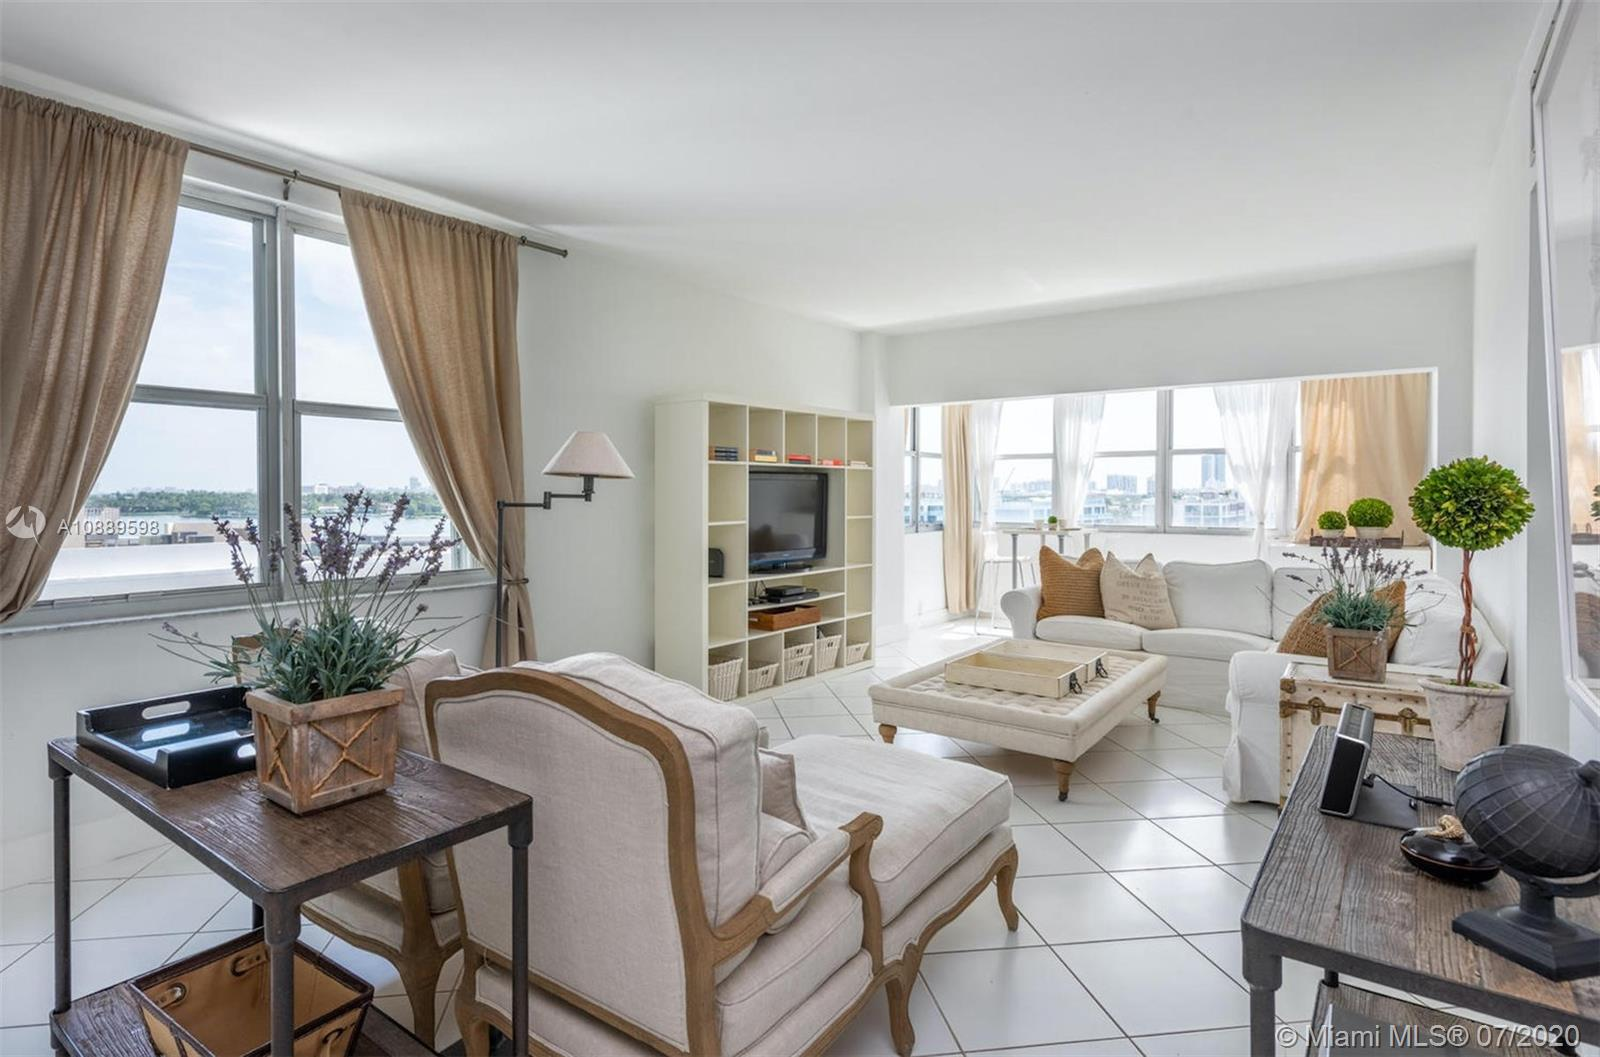 3 Island Ave # 8C, Miami Beach, Florida 33139, 2 Bedrooms Bedrooms, ,2 BathroomsBathrooms,Residential,For Sale,3 Island Ave # 8C,A10889598